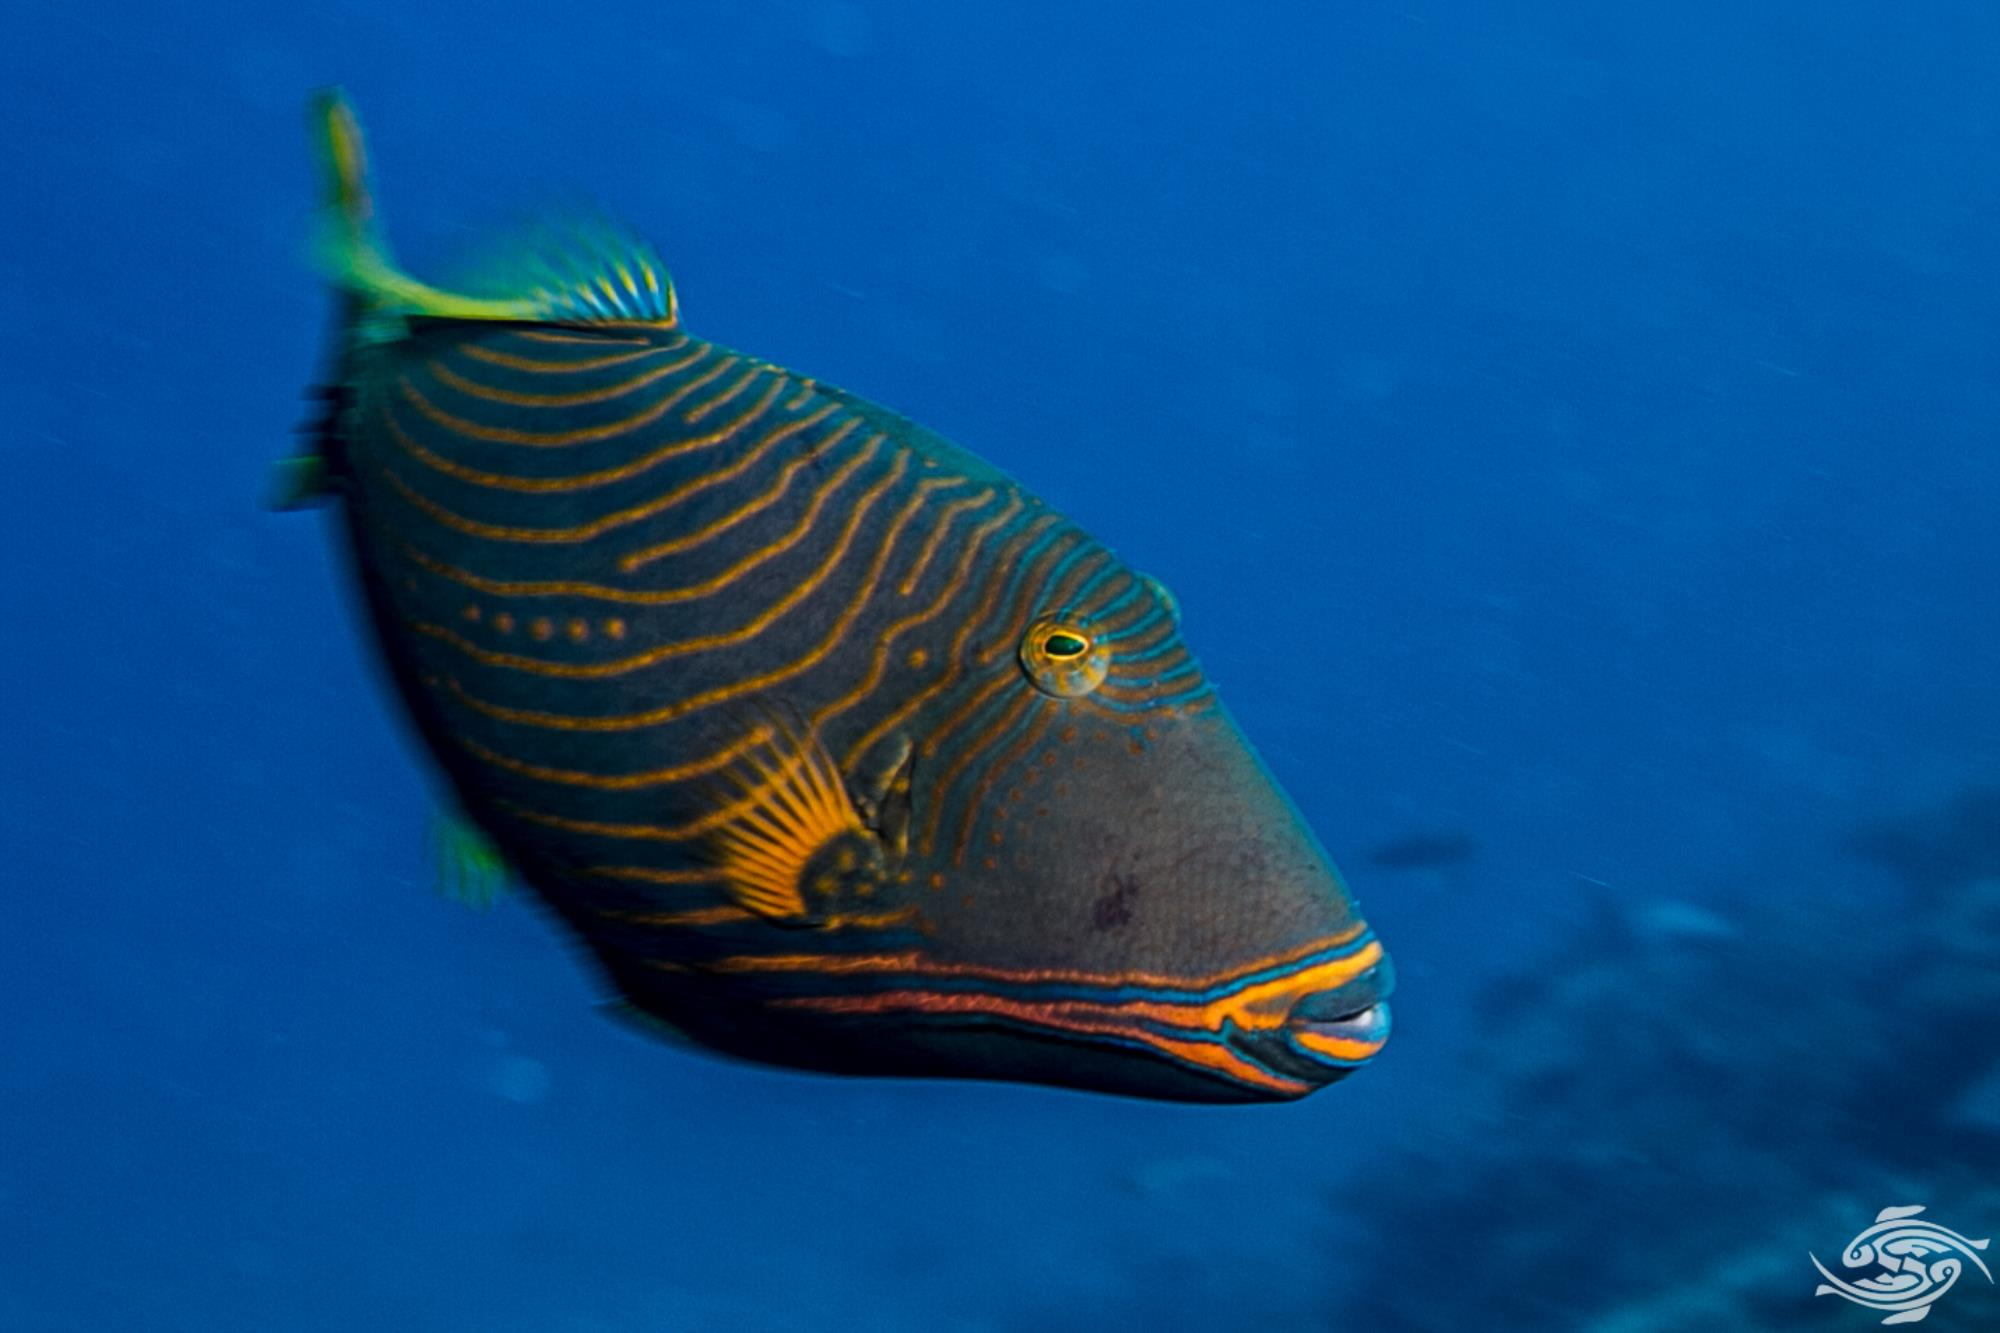 Orangelined Triggerfish (Balistapus undulatus)Undulate Triggerfish, also known as the Orangelined Triggerfish or Orangetailed Triggerfish Orange striped